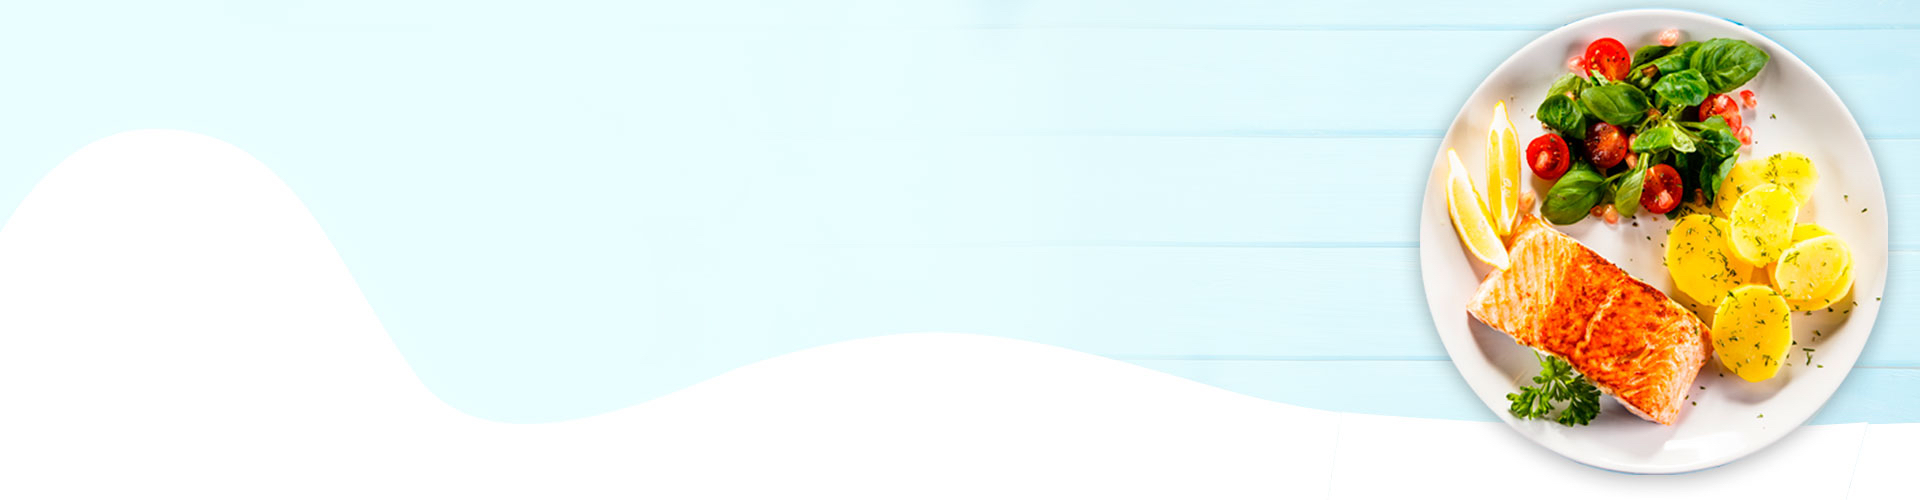 03_nutrition_banner_